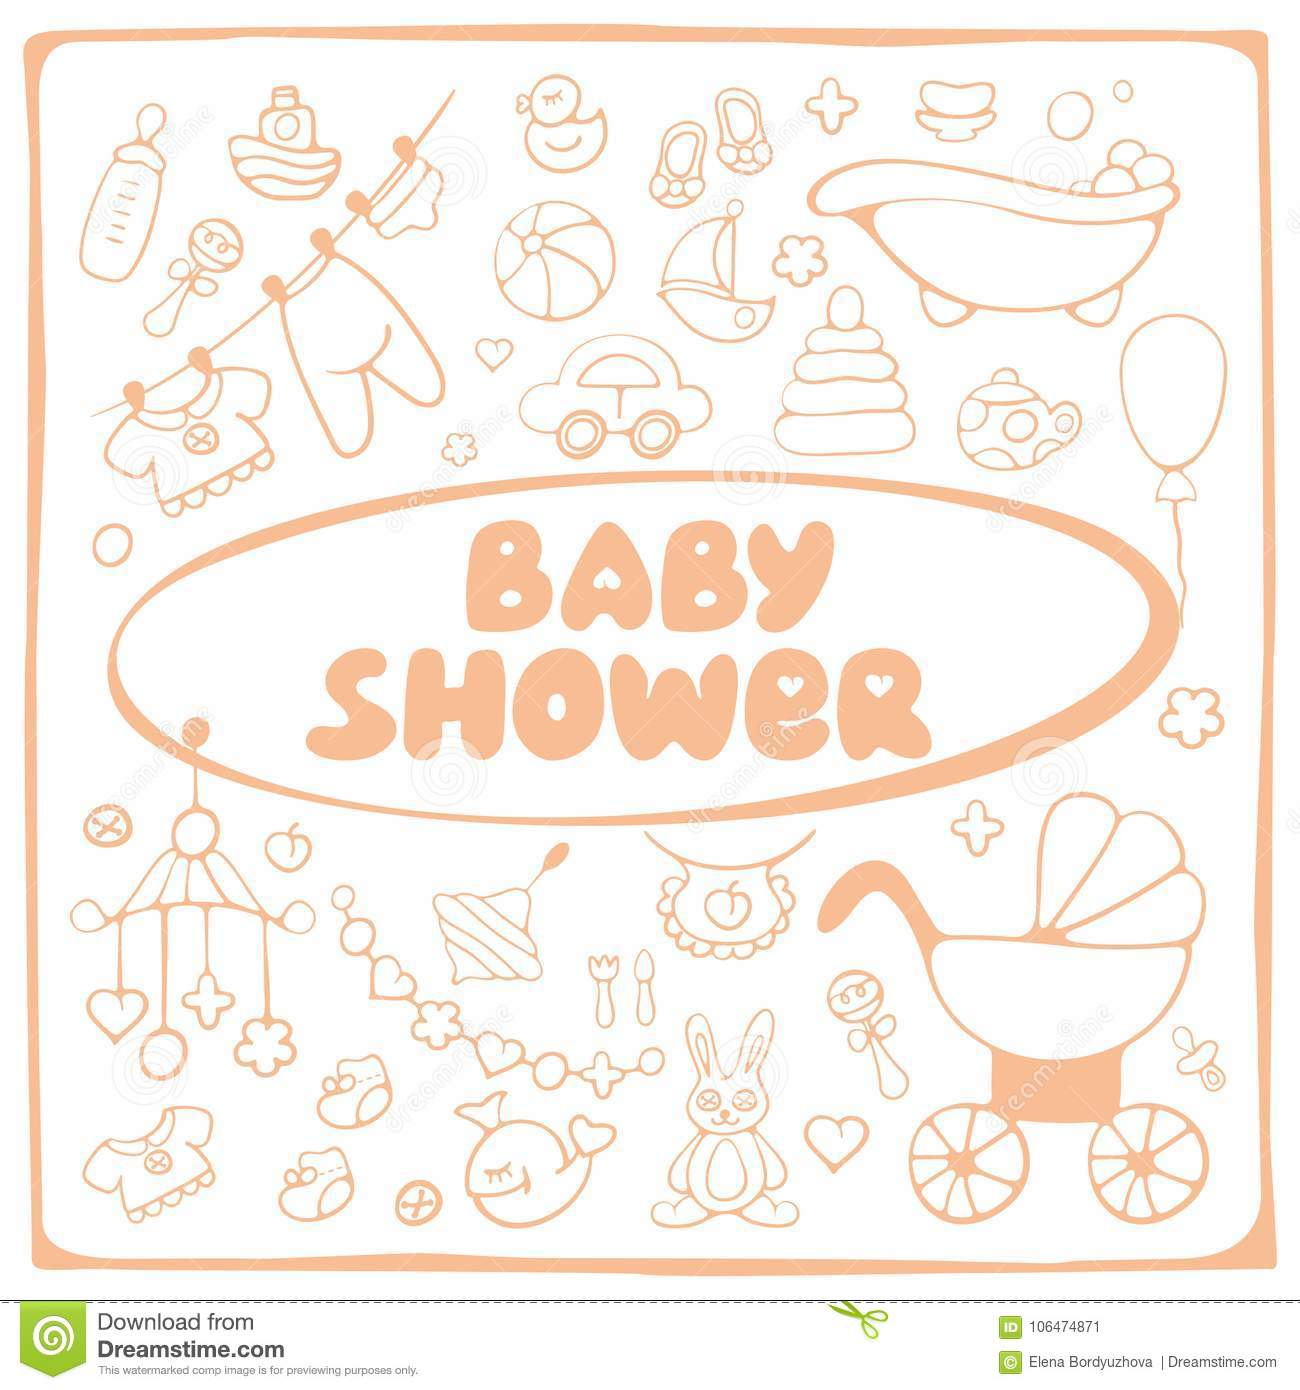 Baby shower elements card stock vector illustration of card 106474871 download baby shower elements card stock vector illustration of card 106474871 stopboris Image collections